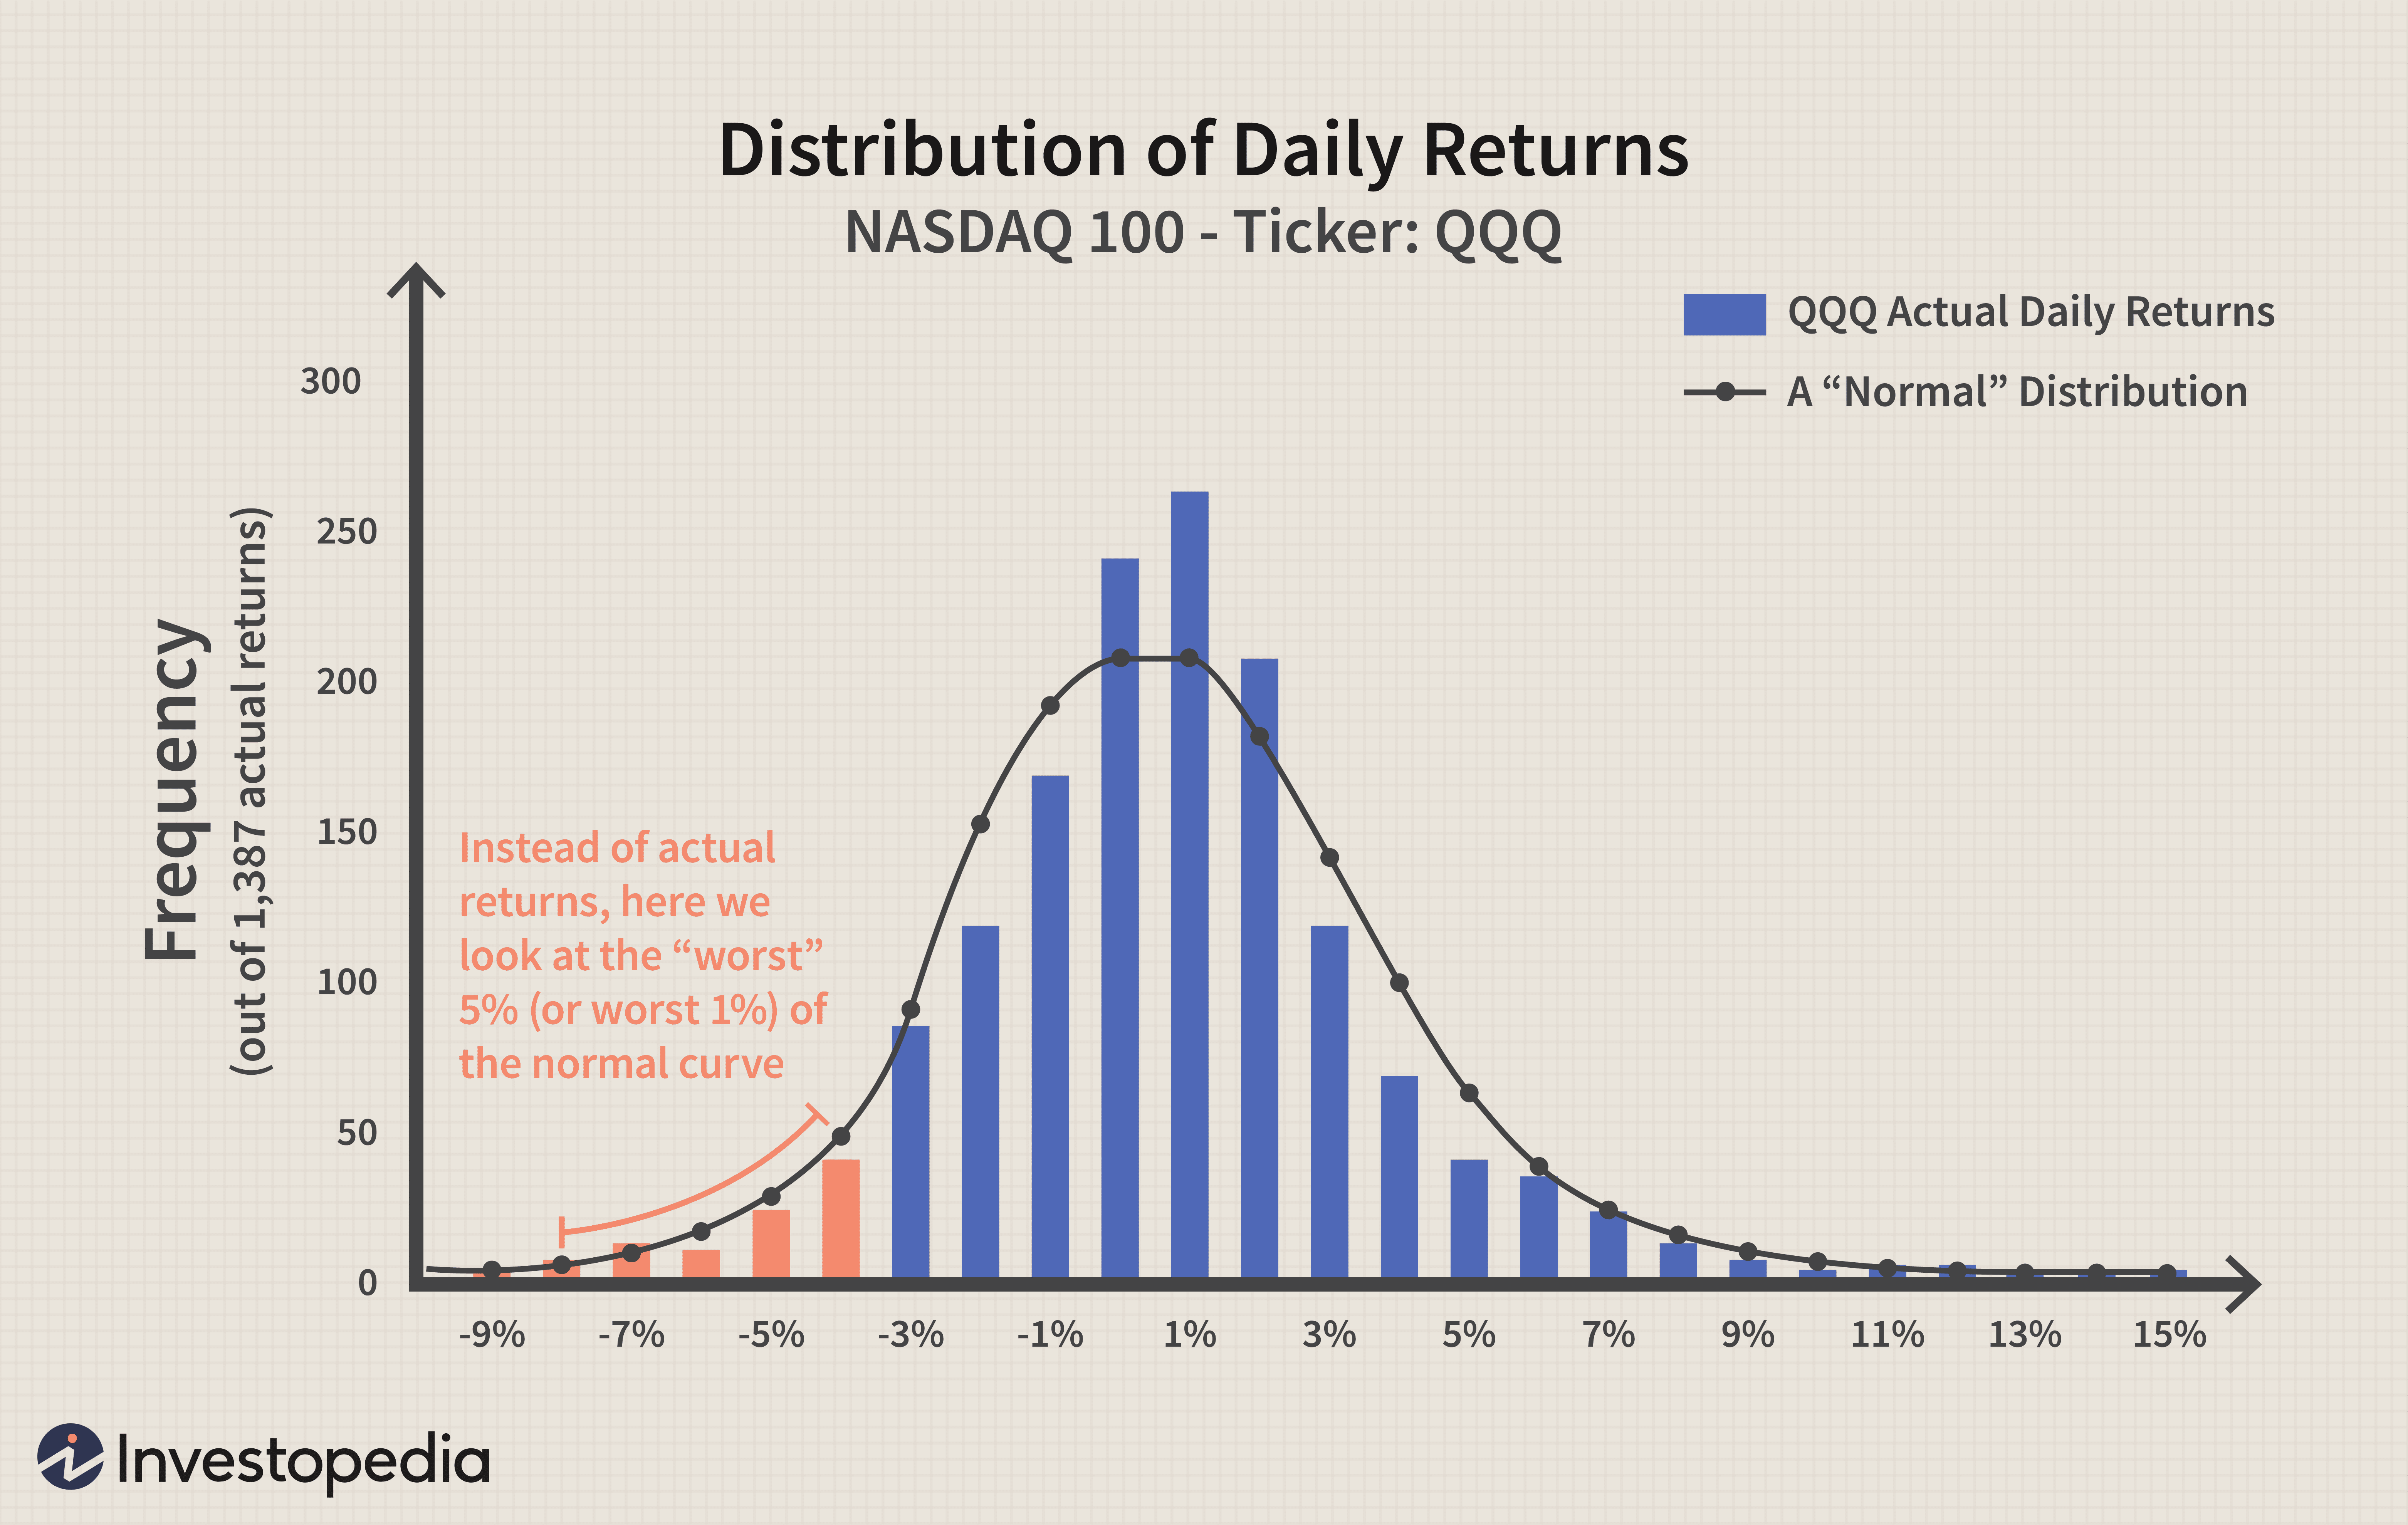 Distribution of Daily Returns